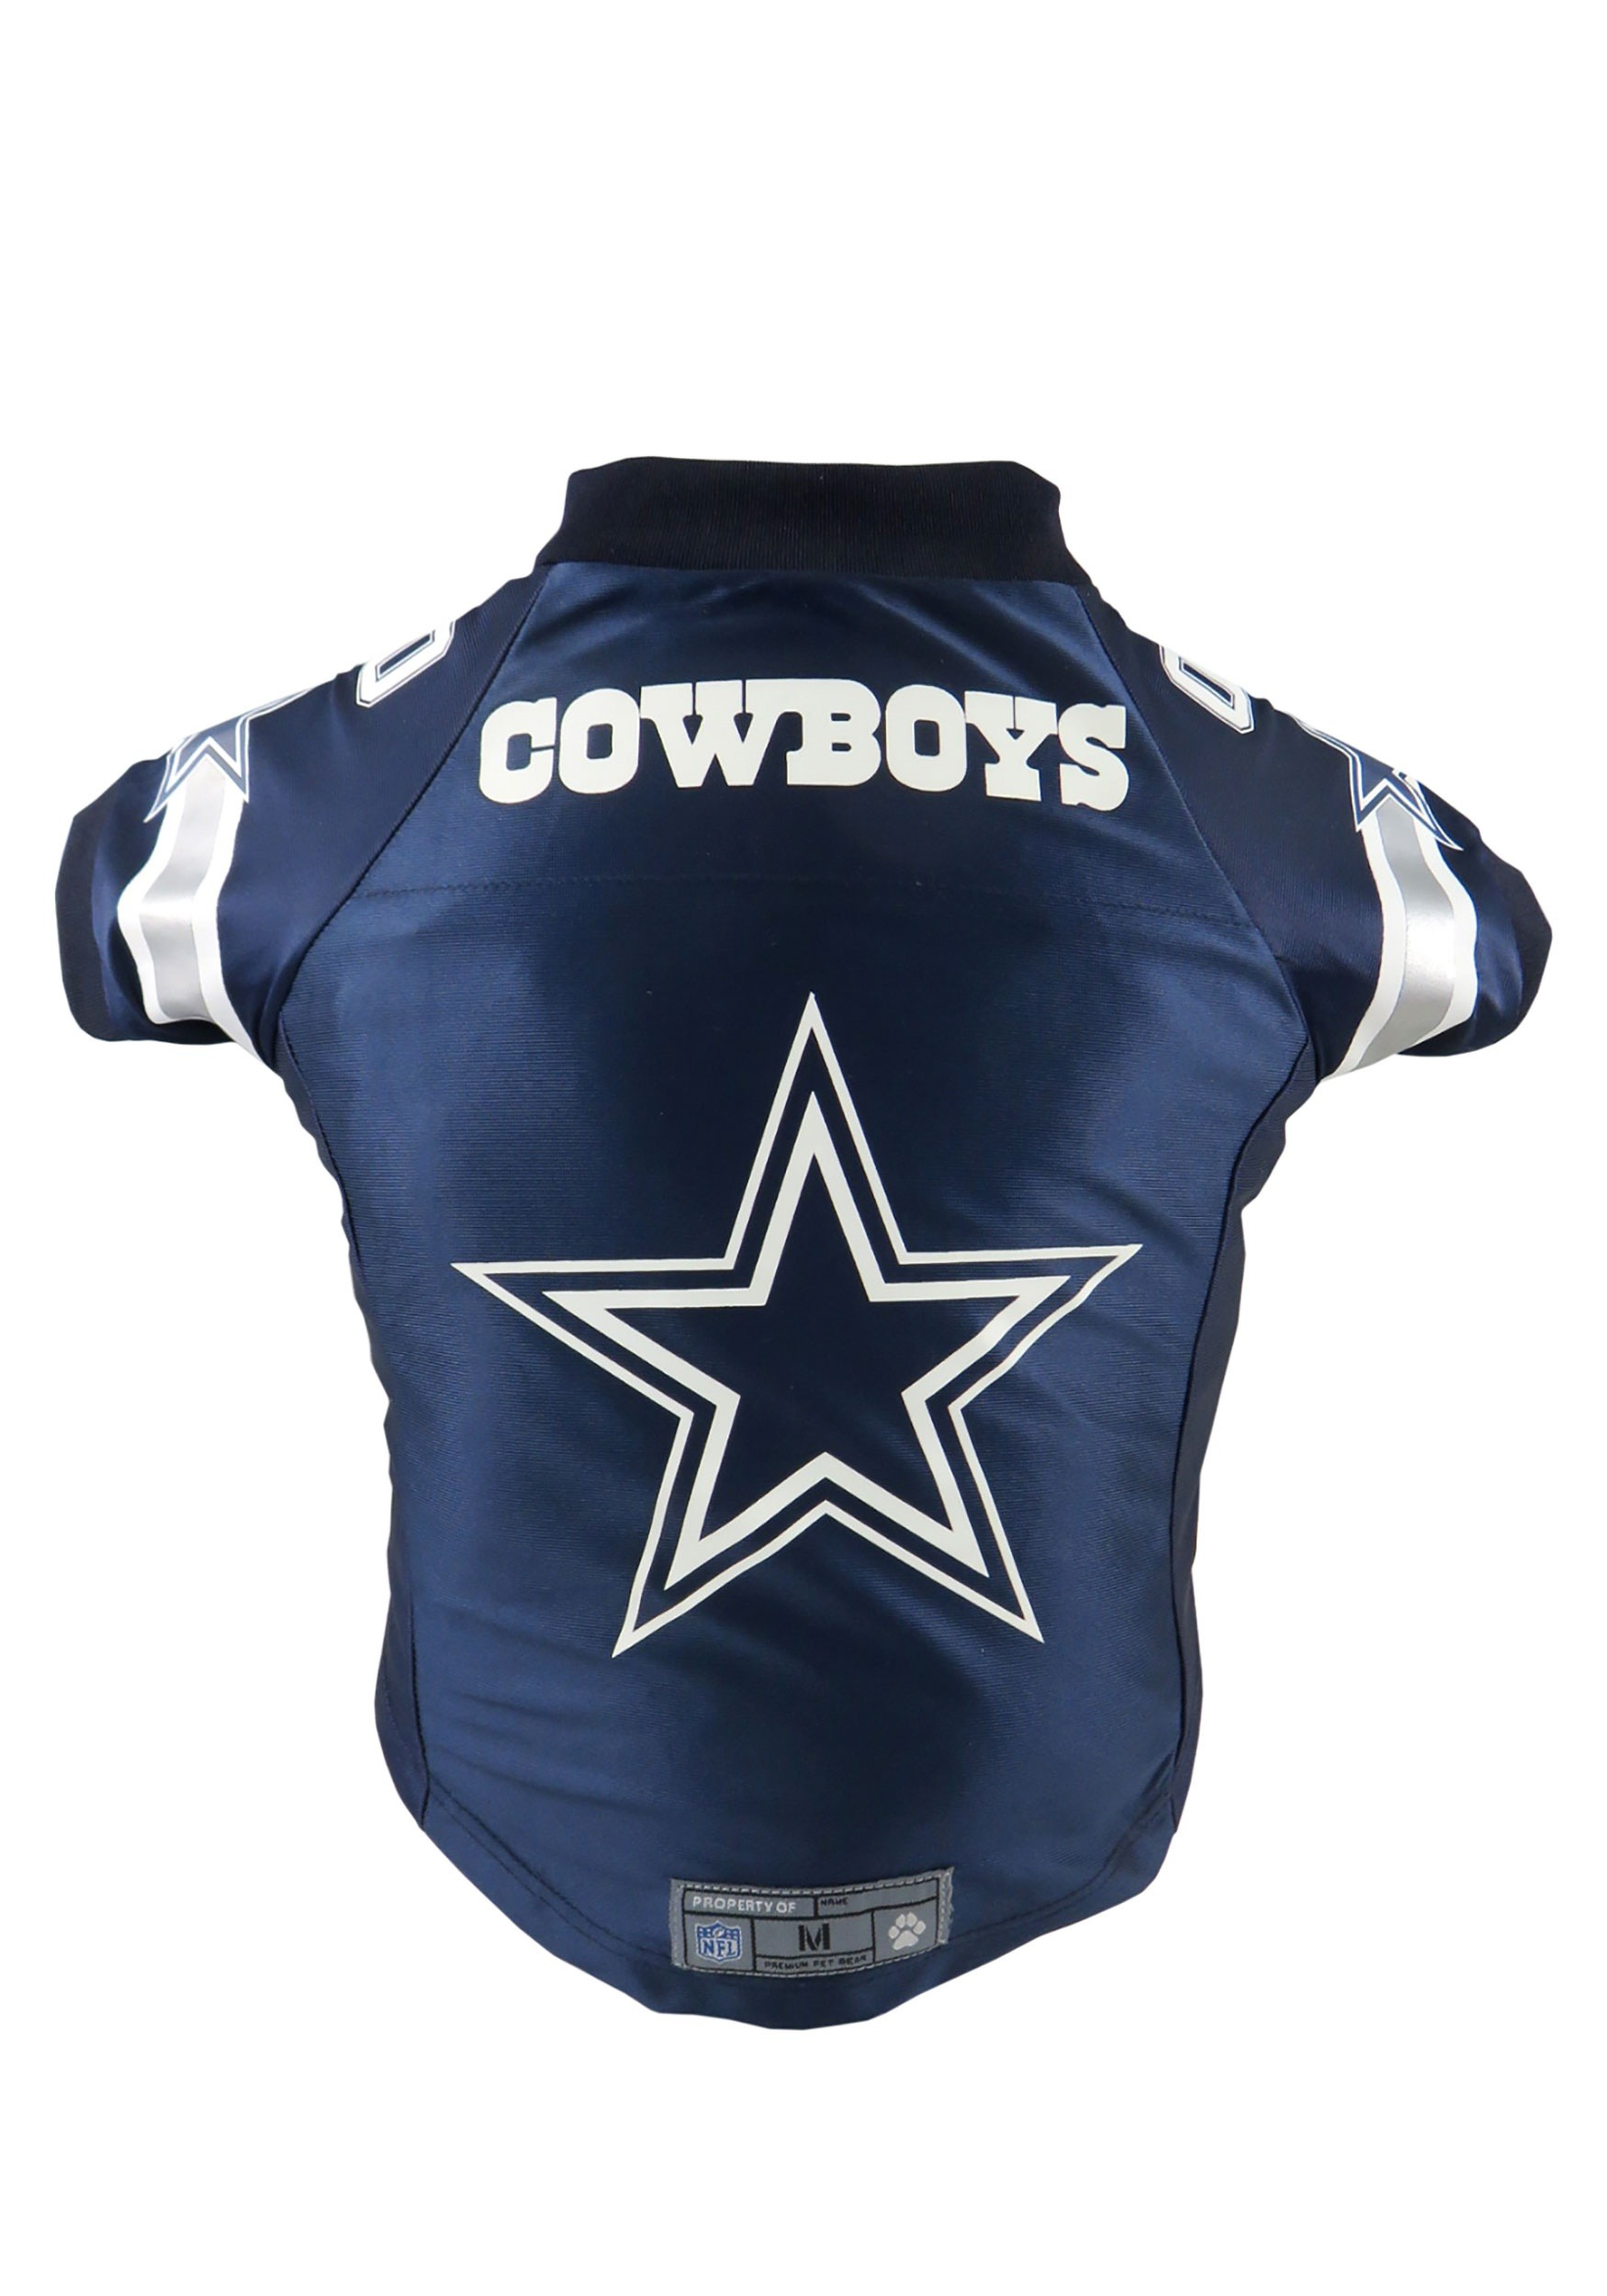 best service 90449 b115f Little Earth 320135-COWB-L NFL Pet Premium Jersey, Dallas Cowboys - Large